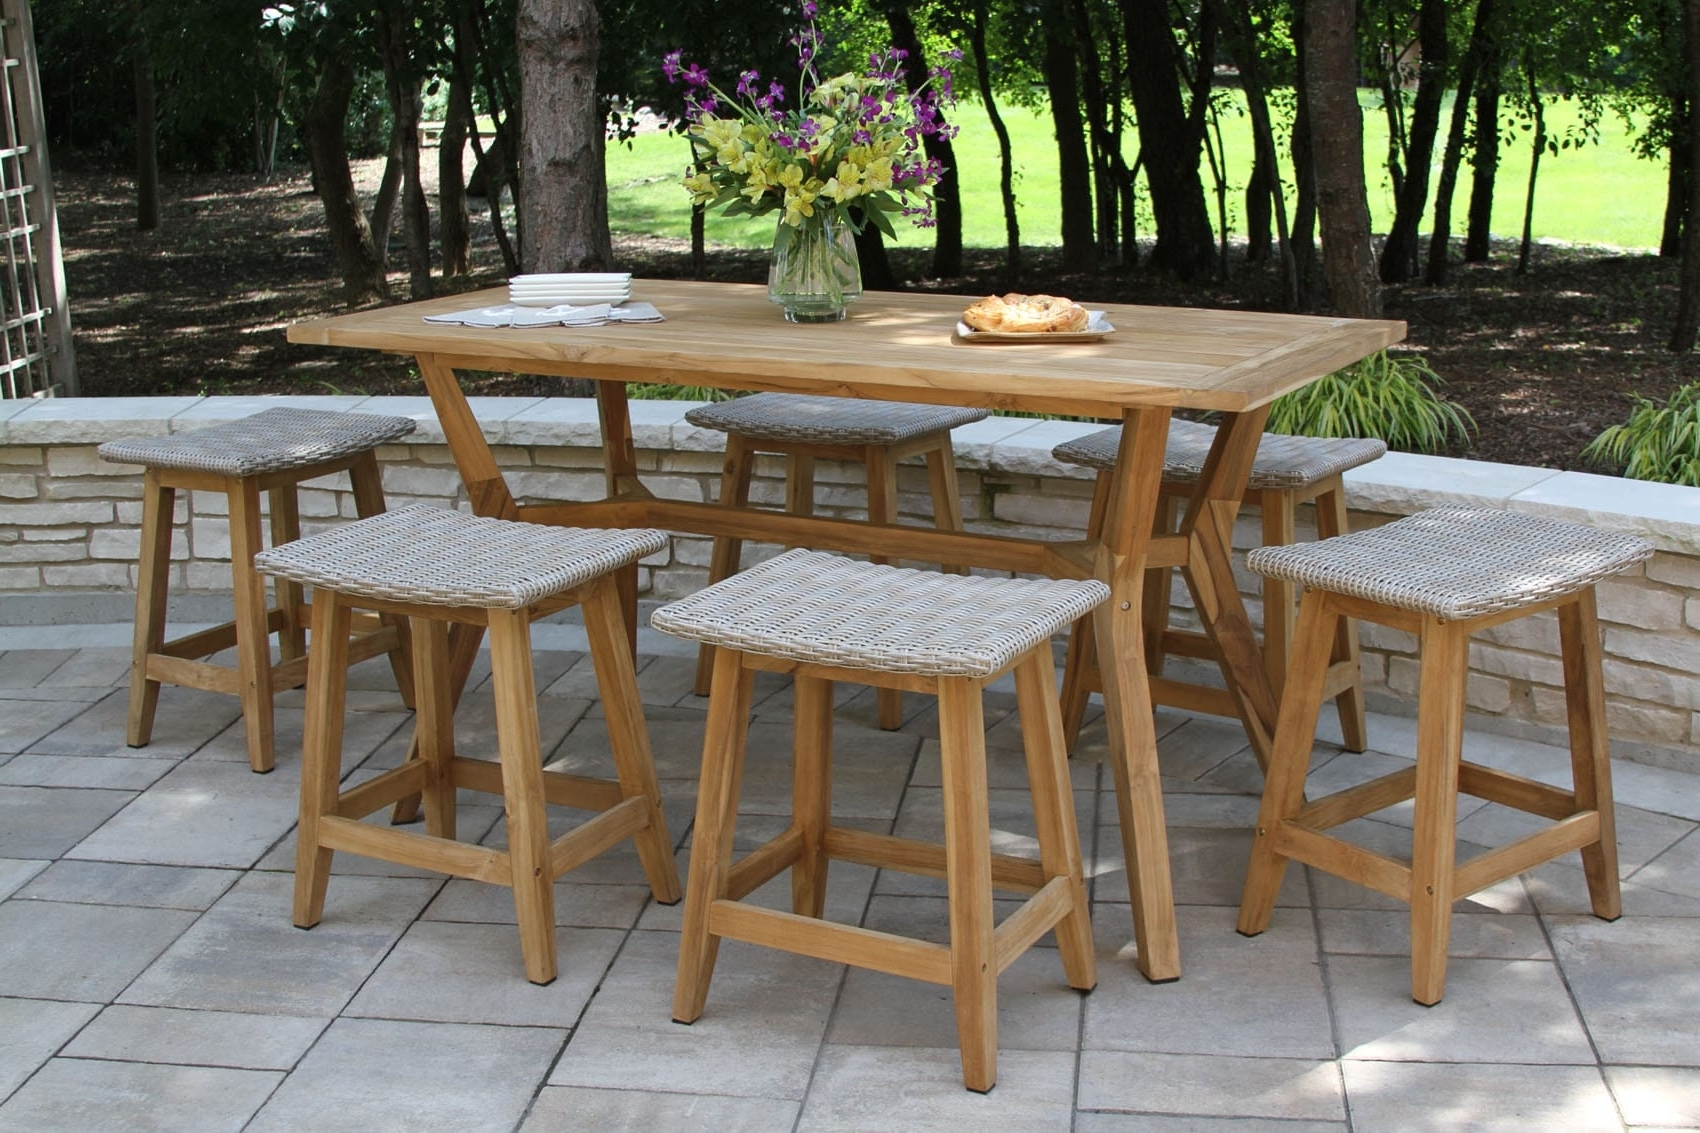 Teak & Wicker Furniture Collection From Outdoor Interiors Throughout Well Liked Outdoor Brasilia Teak High Dining Tables (View 23 of 25)